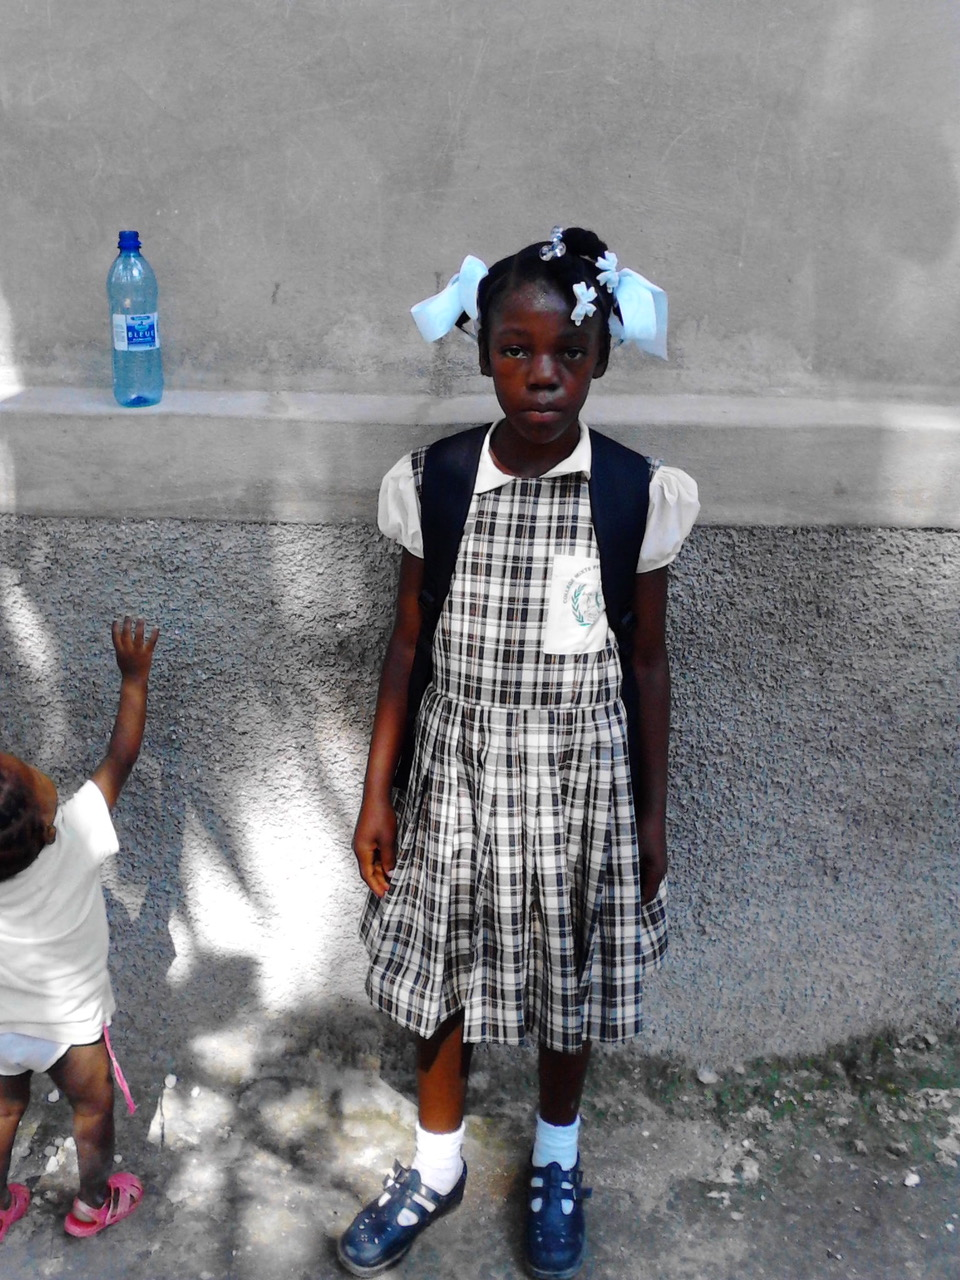 Clerona, the young girl who inspired the Clean Hands for Haiti program, in 2013, shortly after she began school. Clerona would wake up in the early dawn to cook, clean, and do household chores while other kids her age were getting to go to school. She transferred that hard work to her studies and within a year at school, was one of the top students in her class.